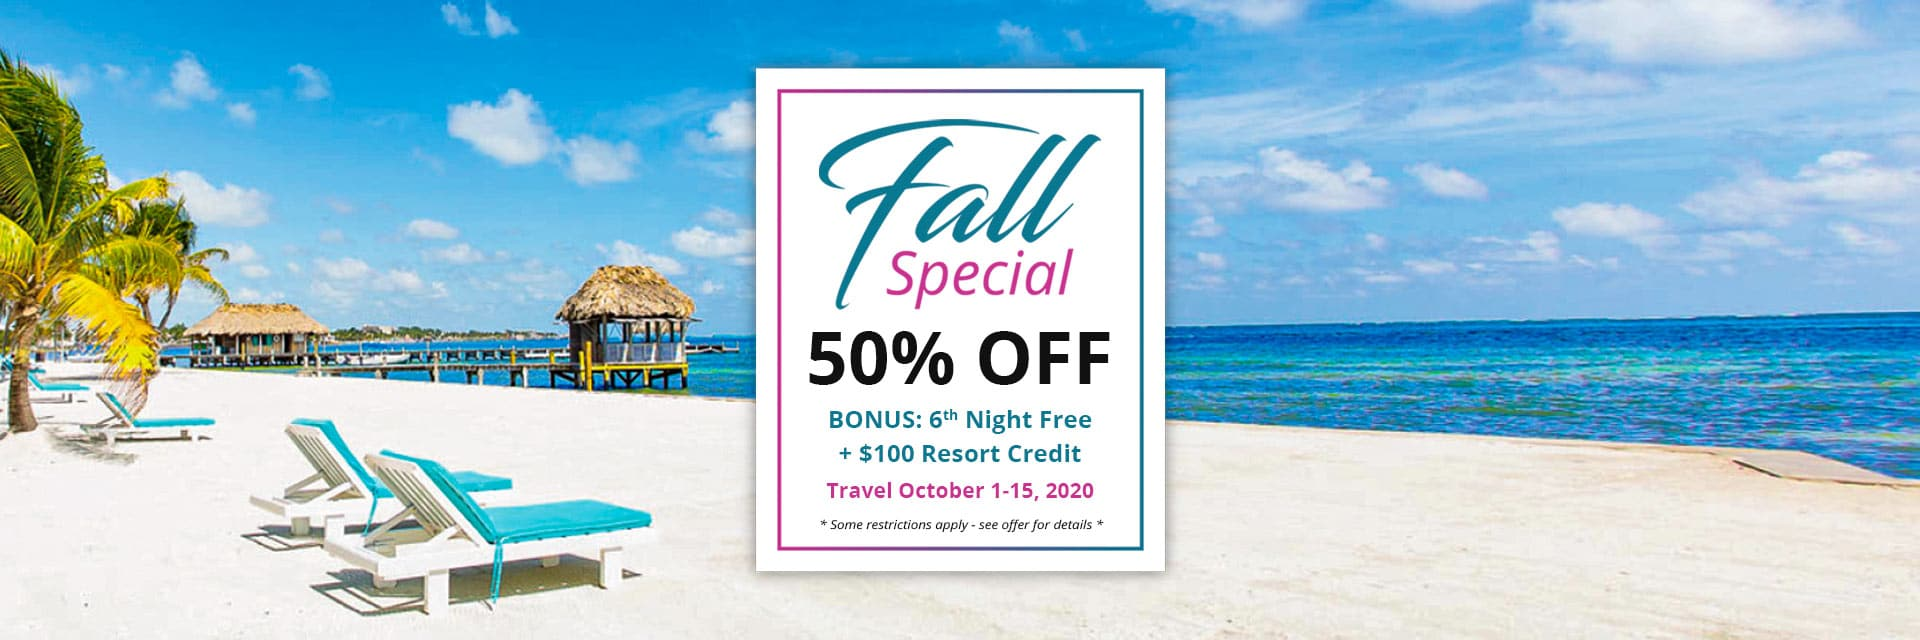 Victoria House Resort & Spa Fall Special